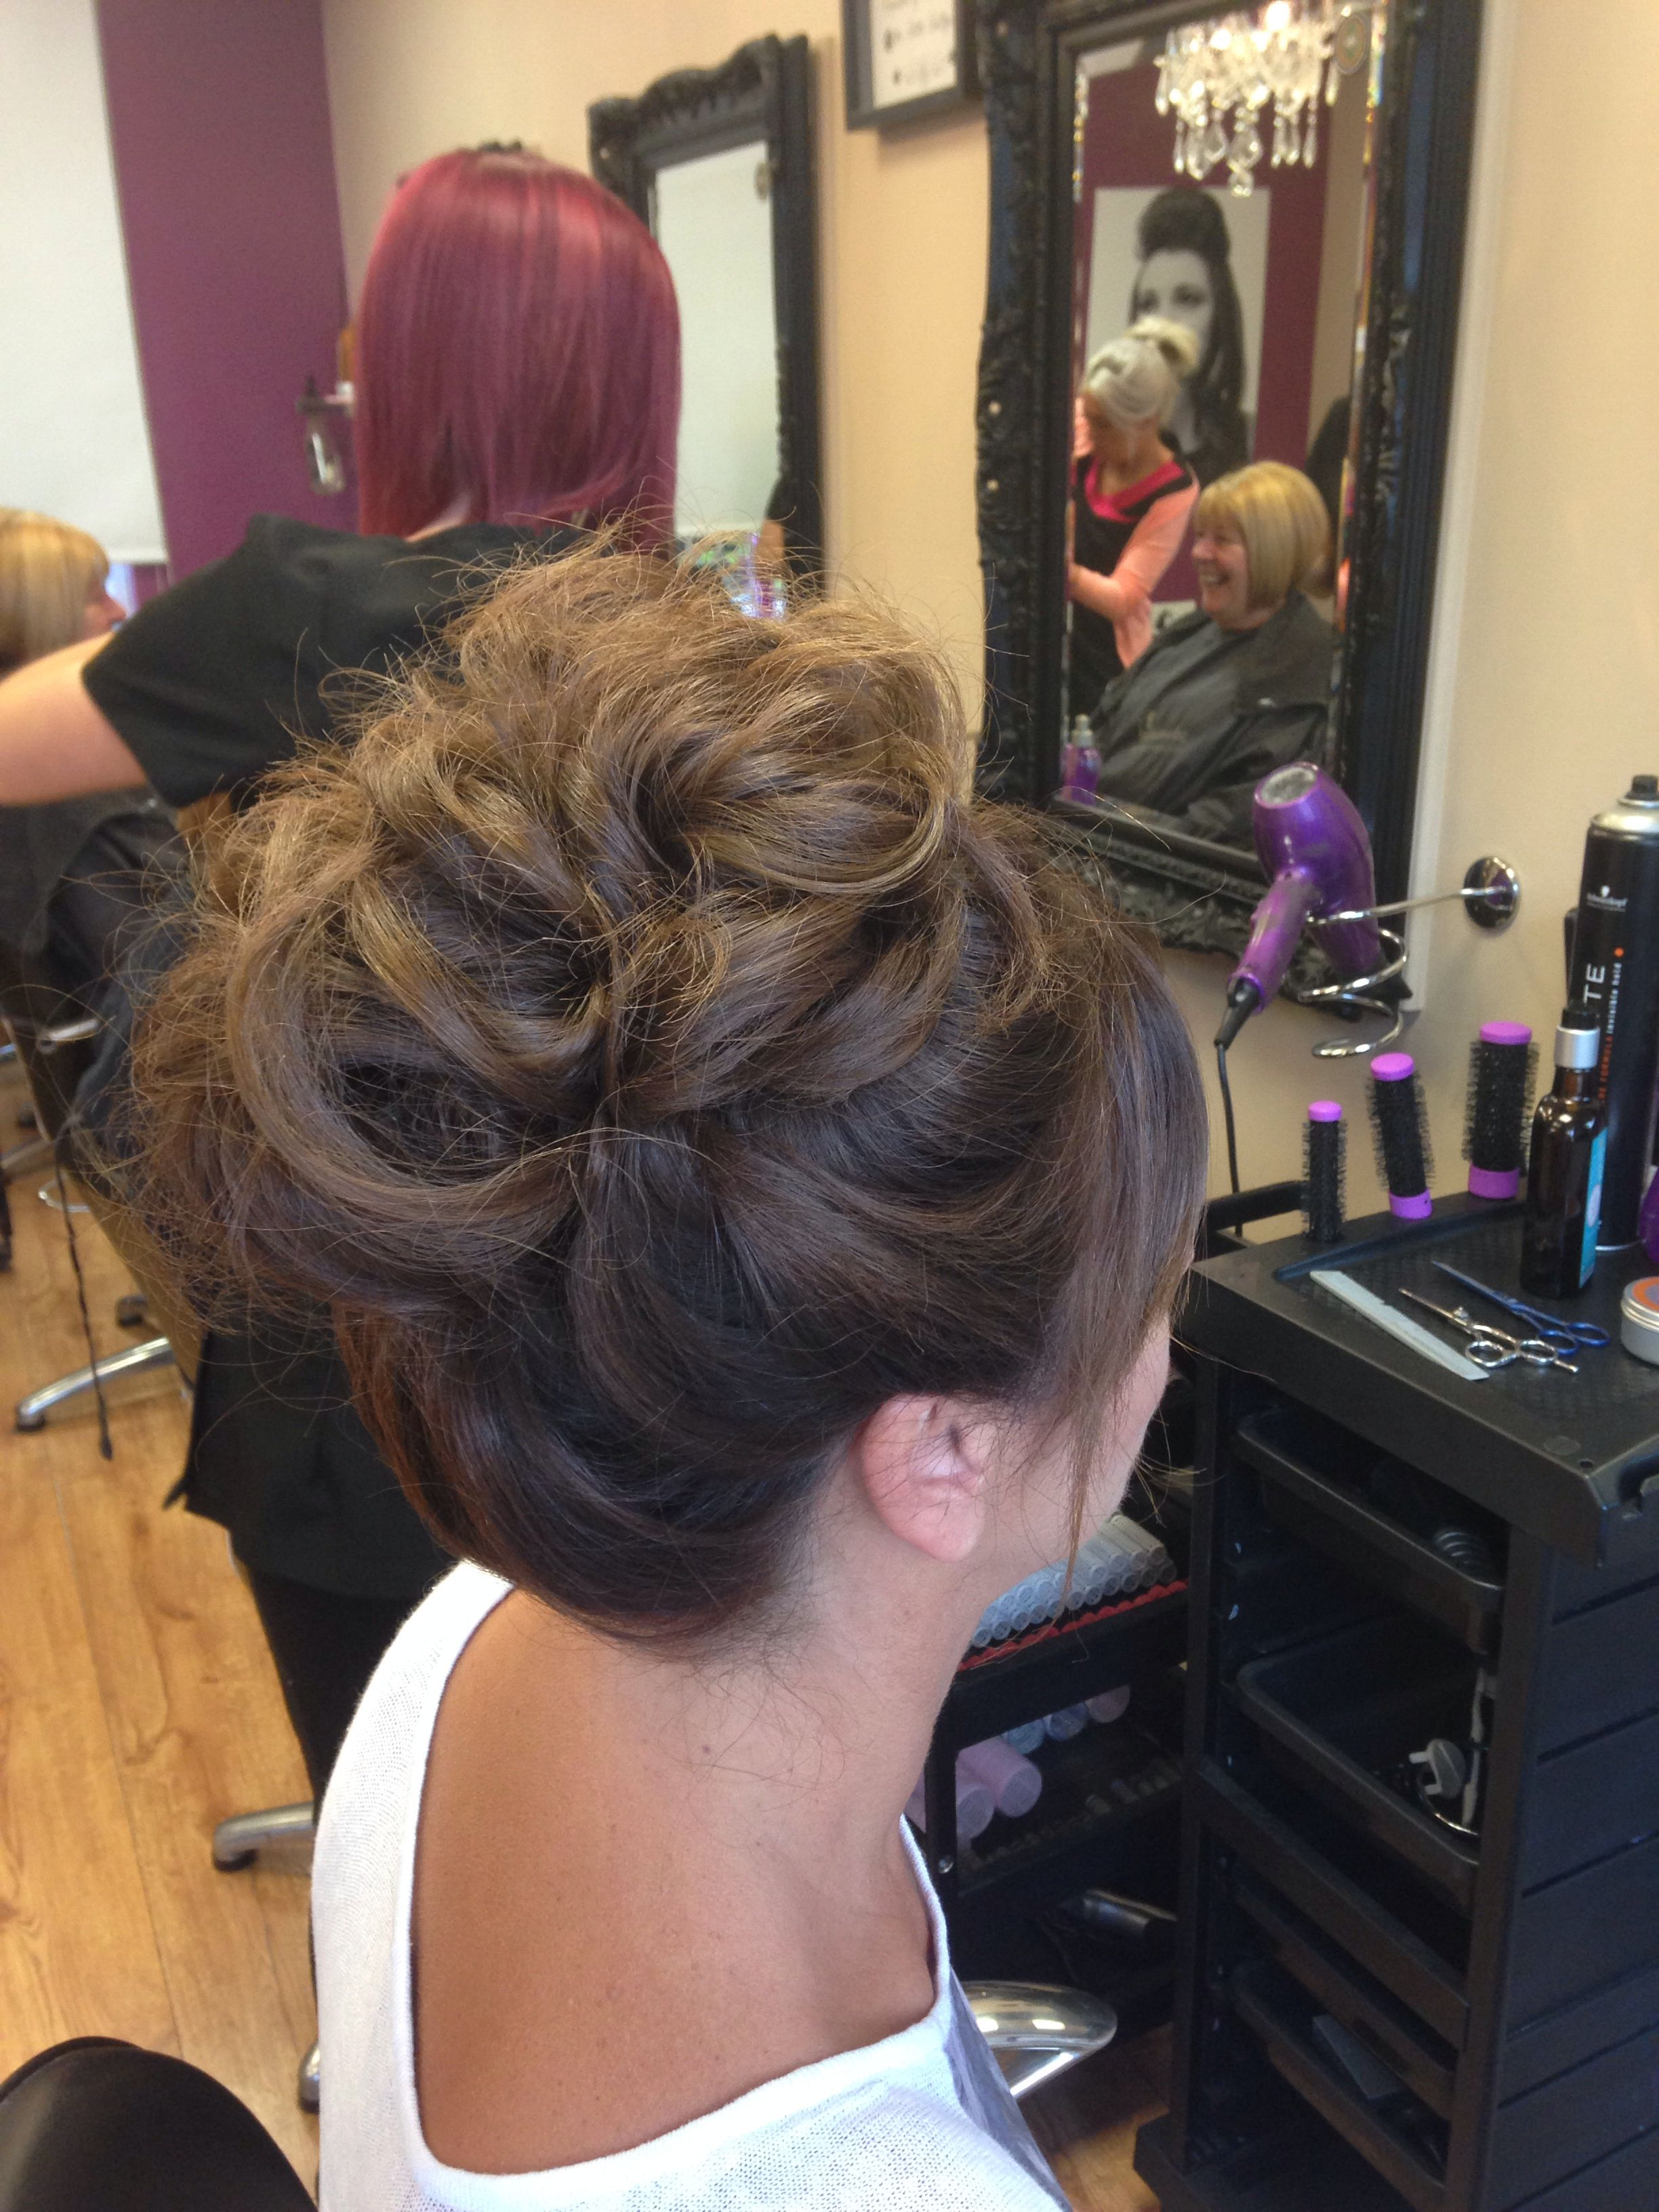 high hair your highness style formal wedding guest brown